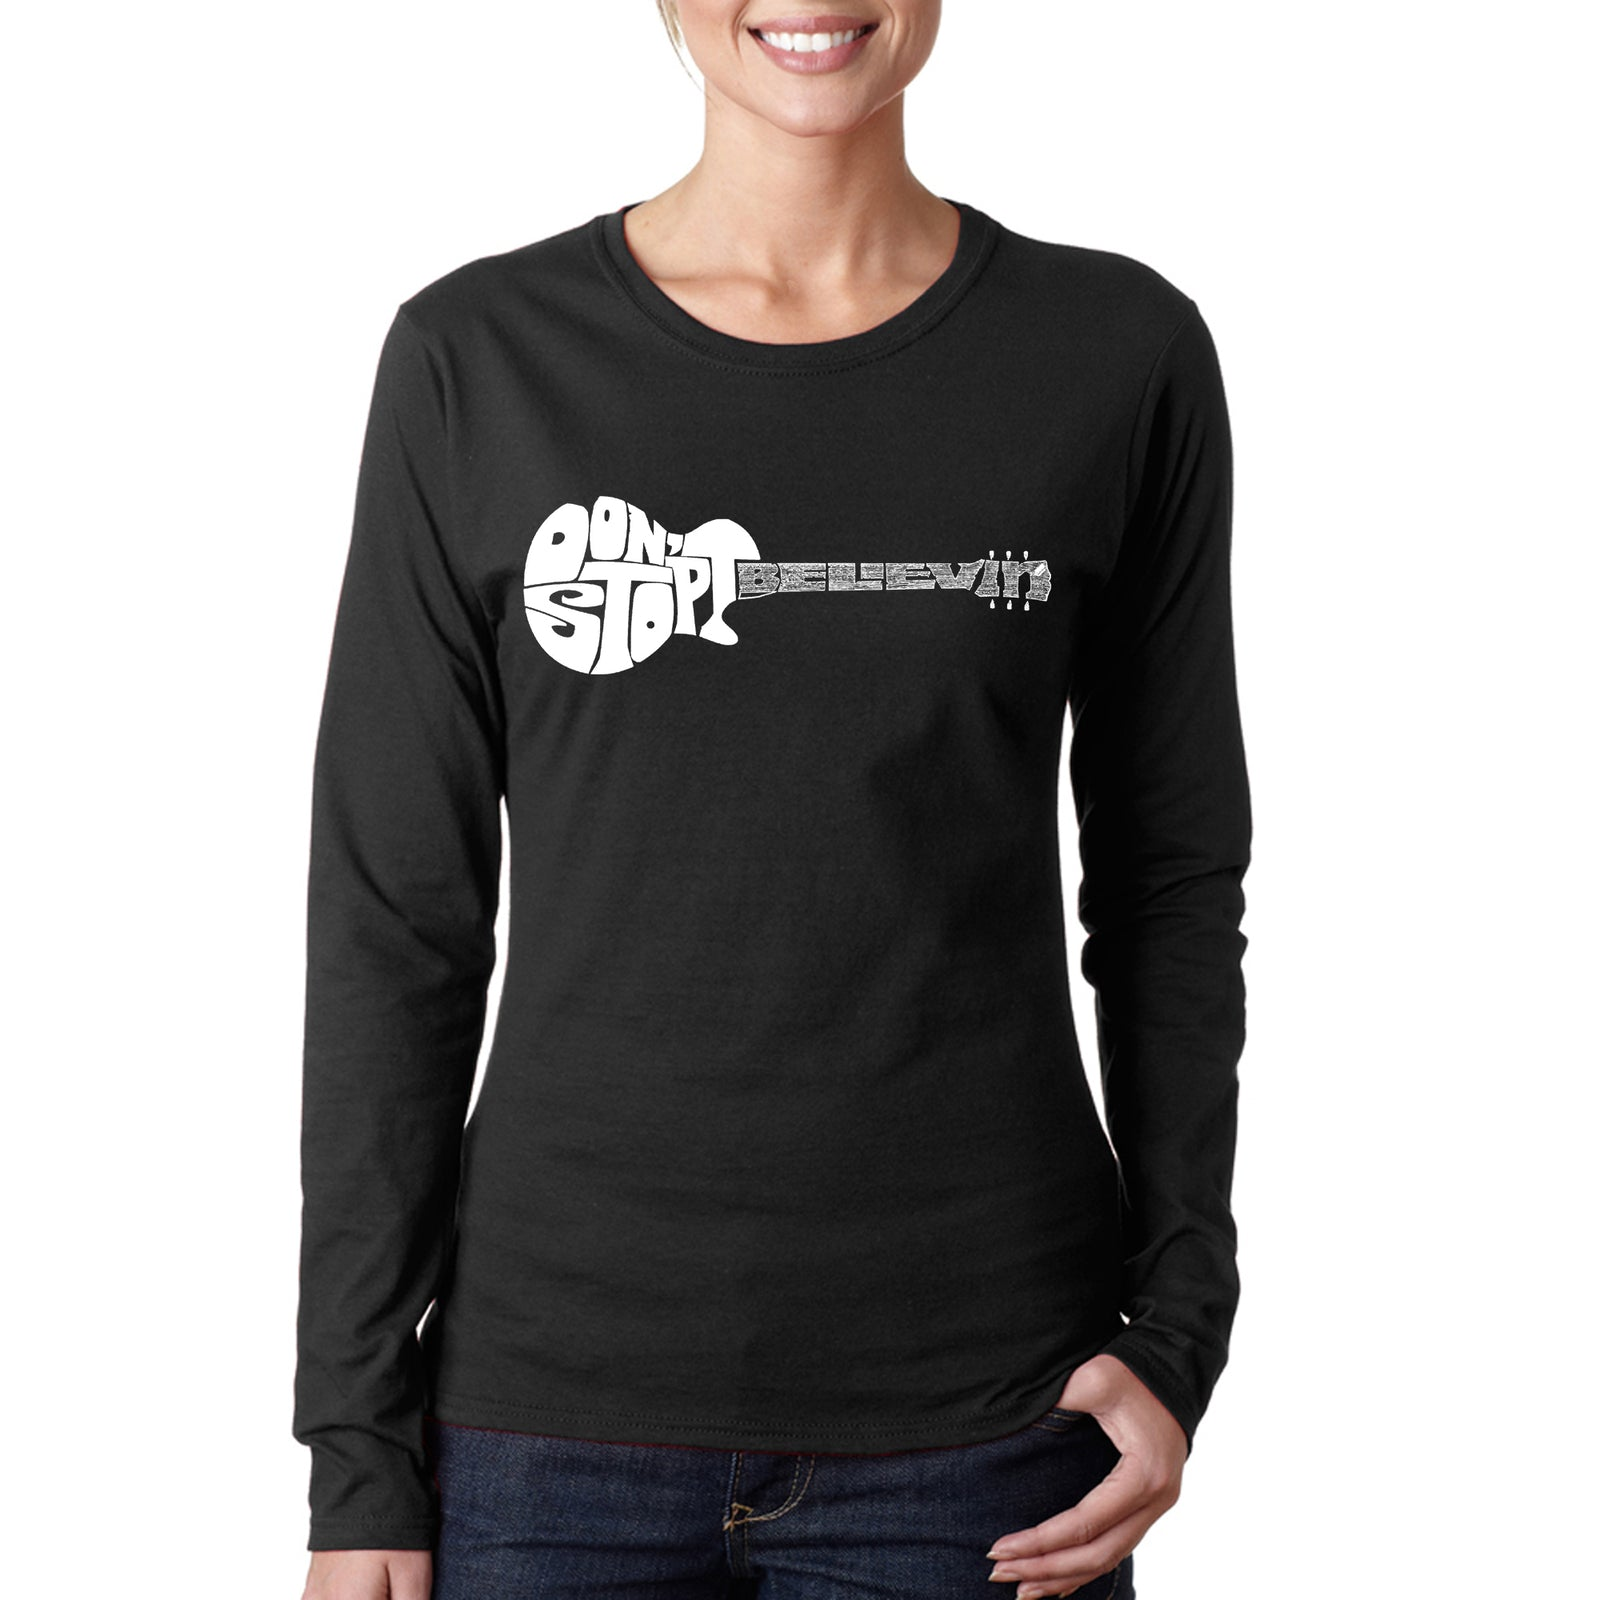 Women's Long Sleeve T-Shirt - Don't Stop Believin'